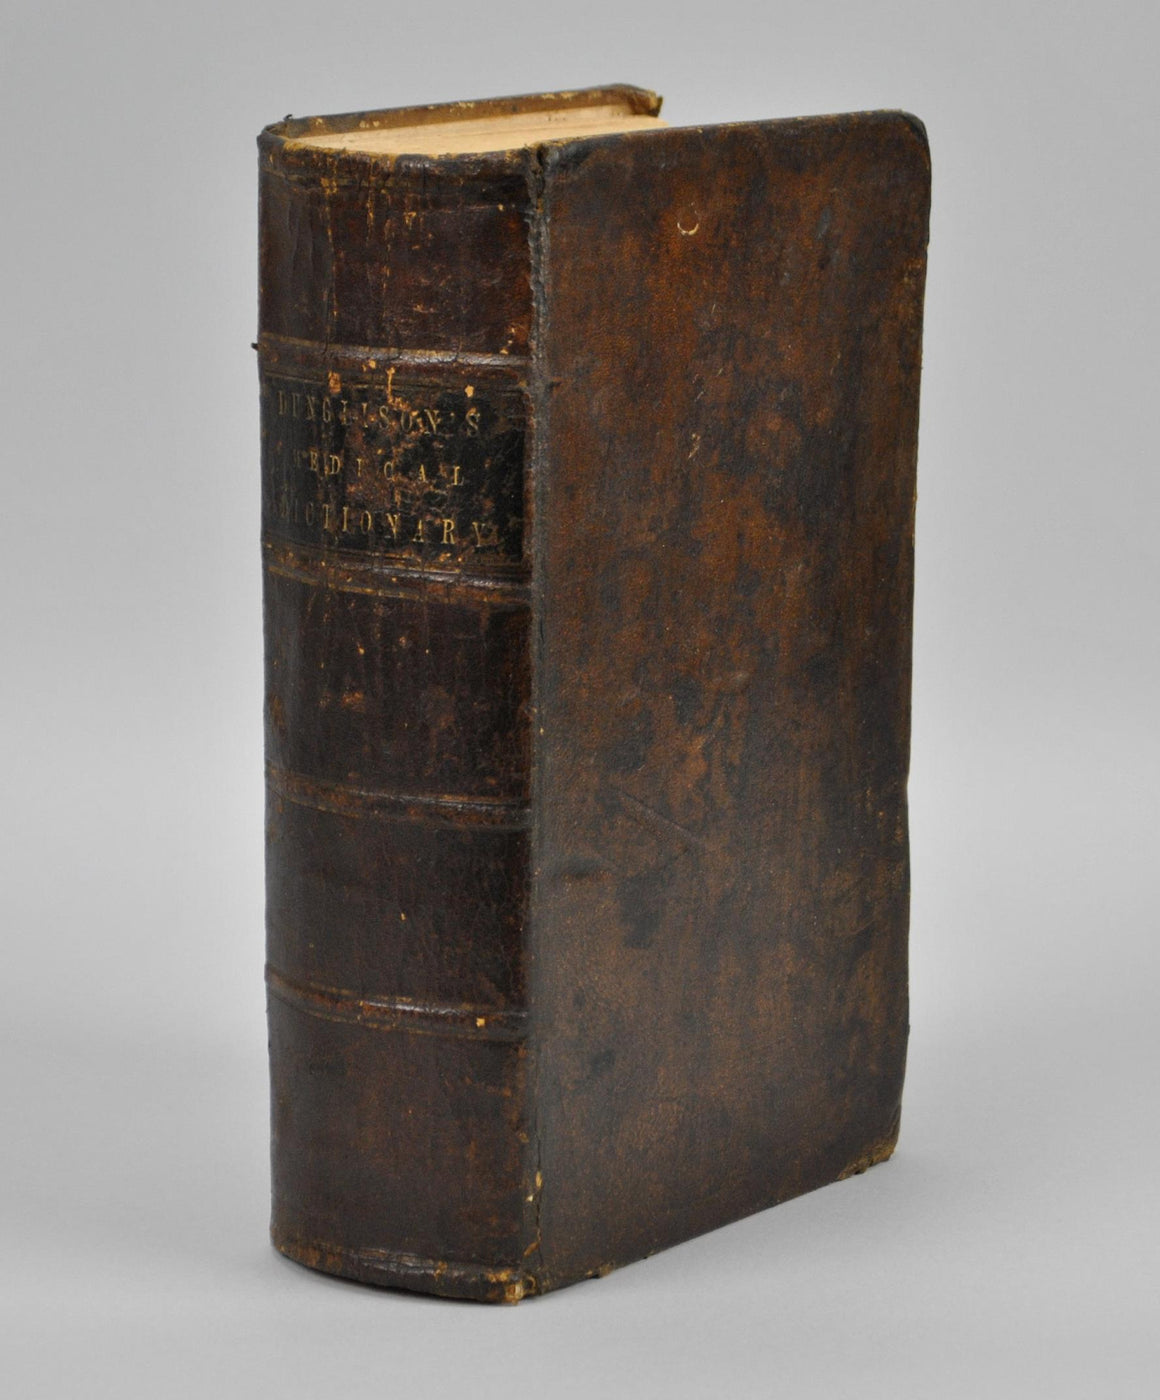 Medical Lexicon A Dictionary of Medical Science by Robley Dunglison 1858